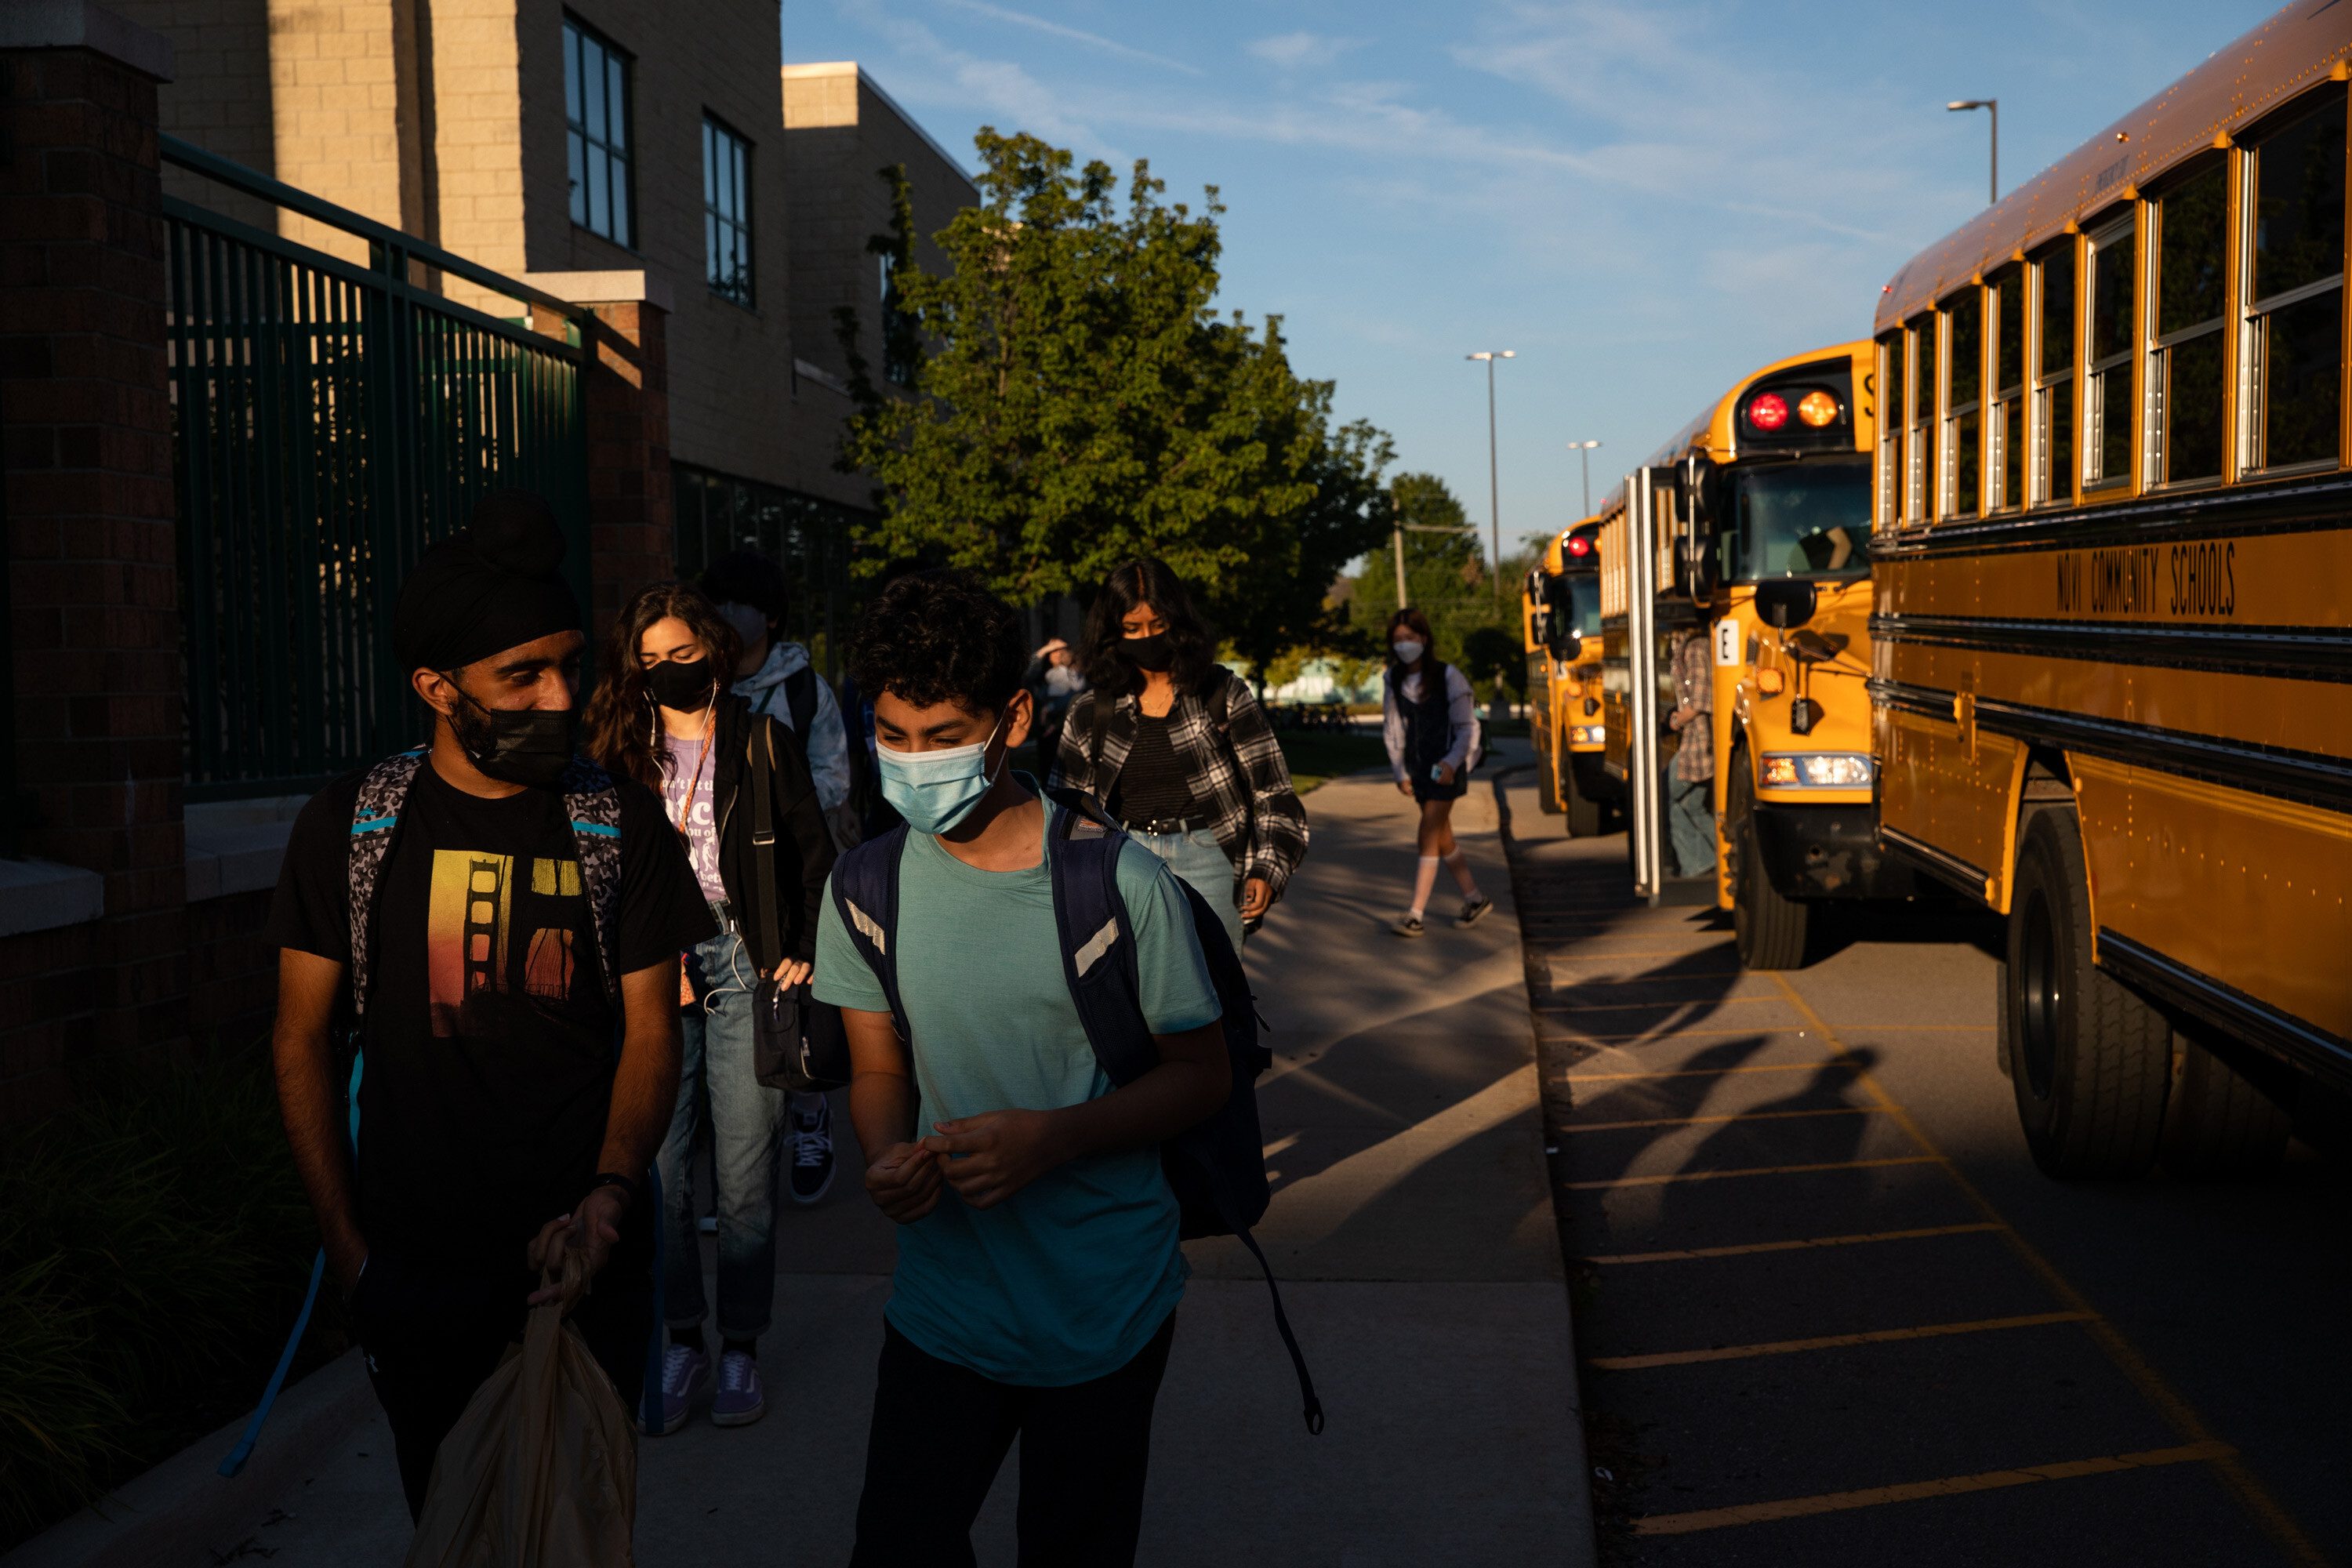 Schools superintendent talks about the 'big tragedy' happening across America